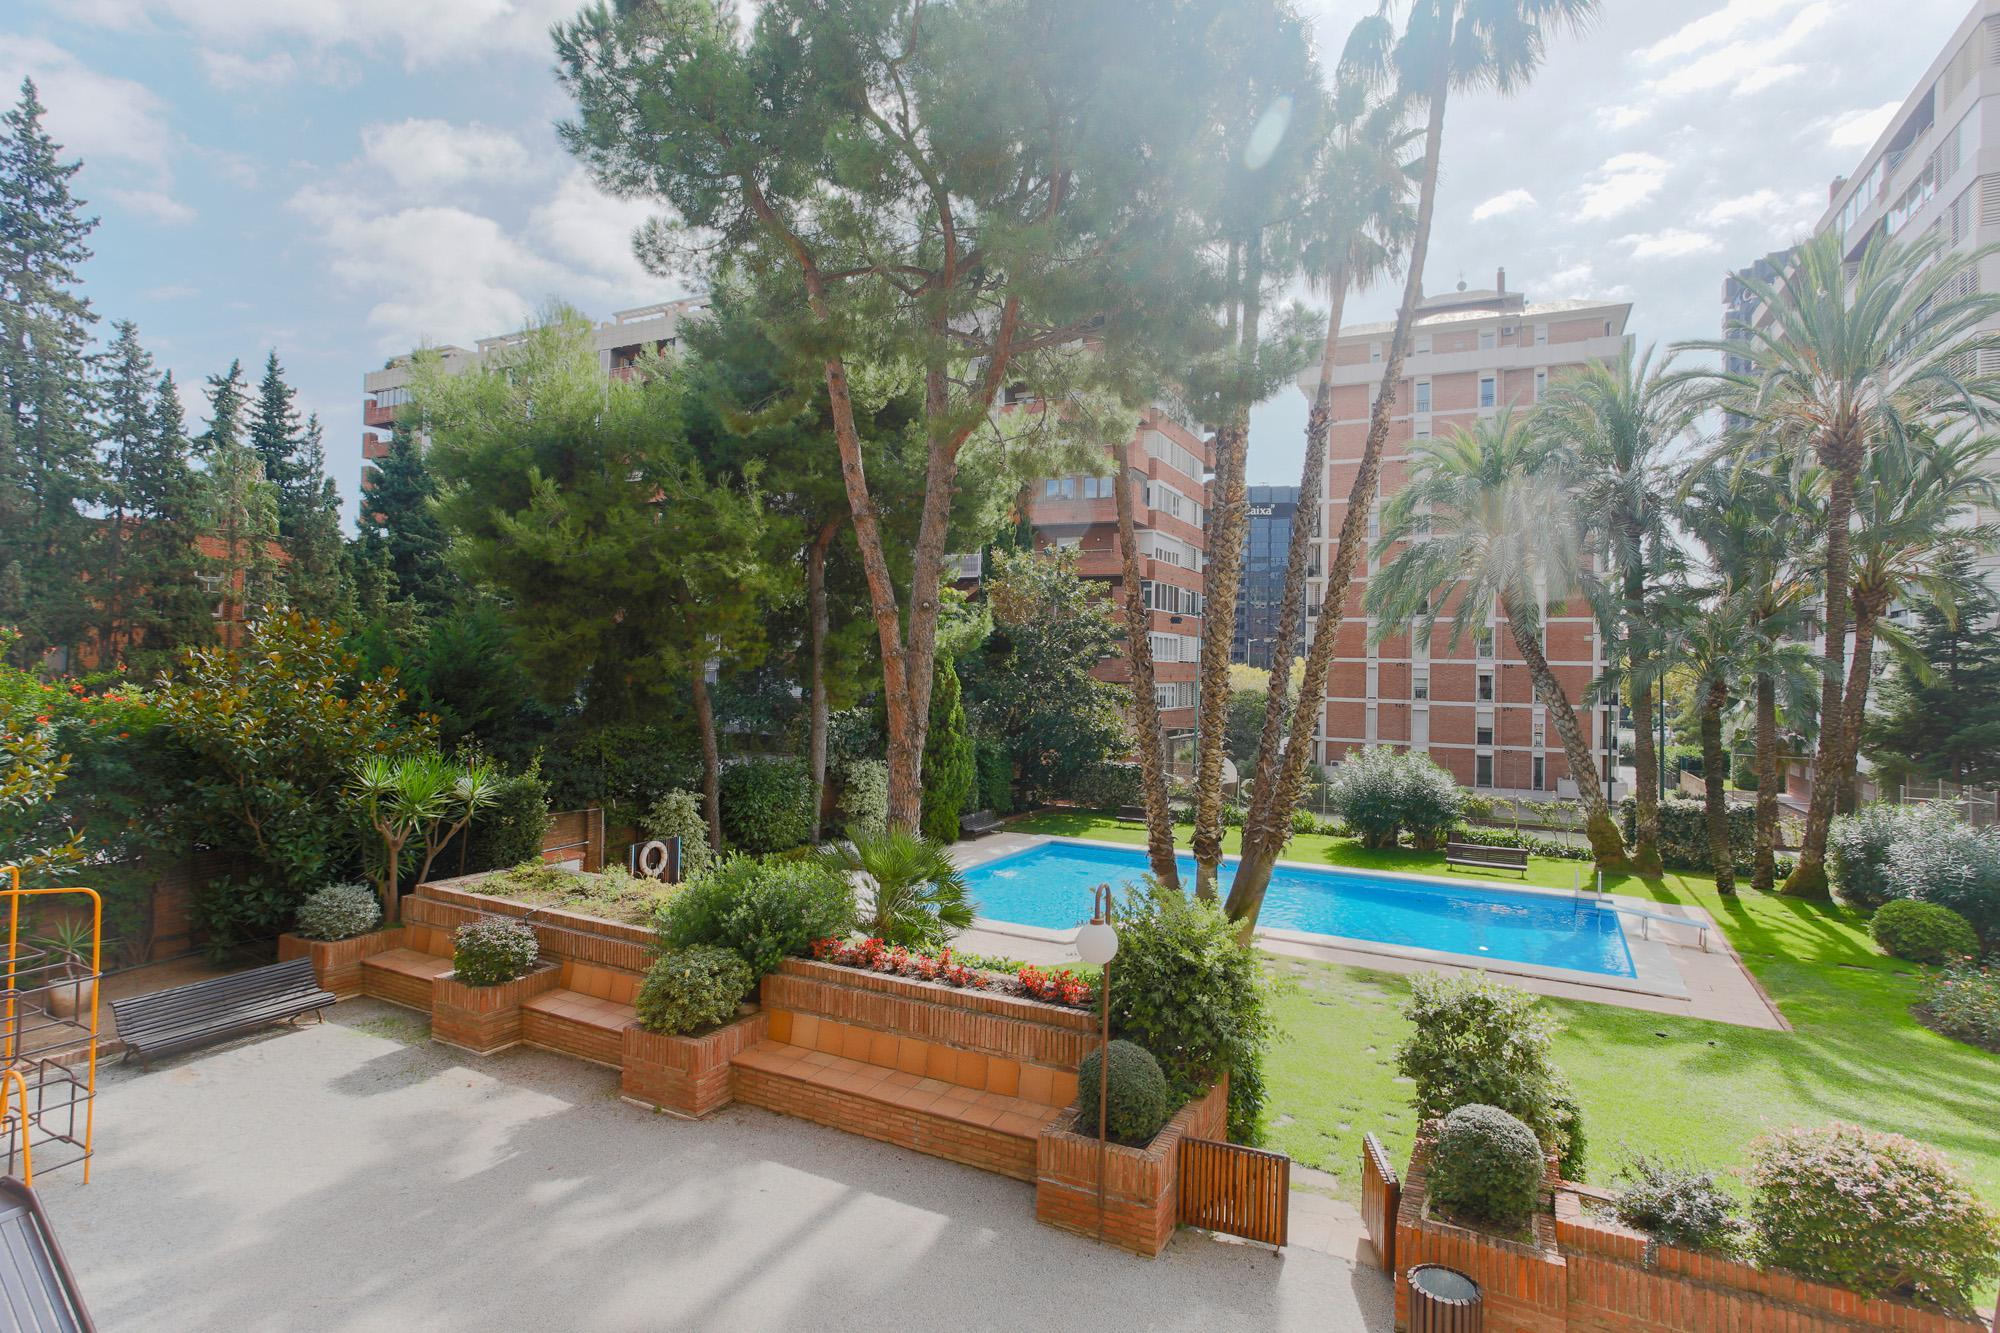 232863 Apartment for sale in Les Corts, Pedralbes 35